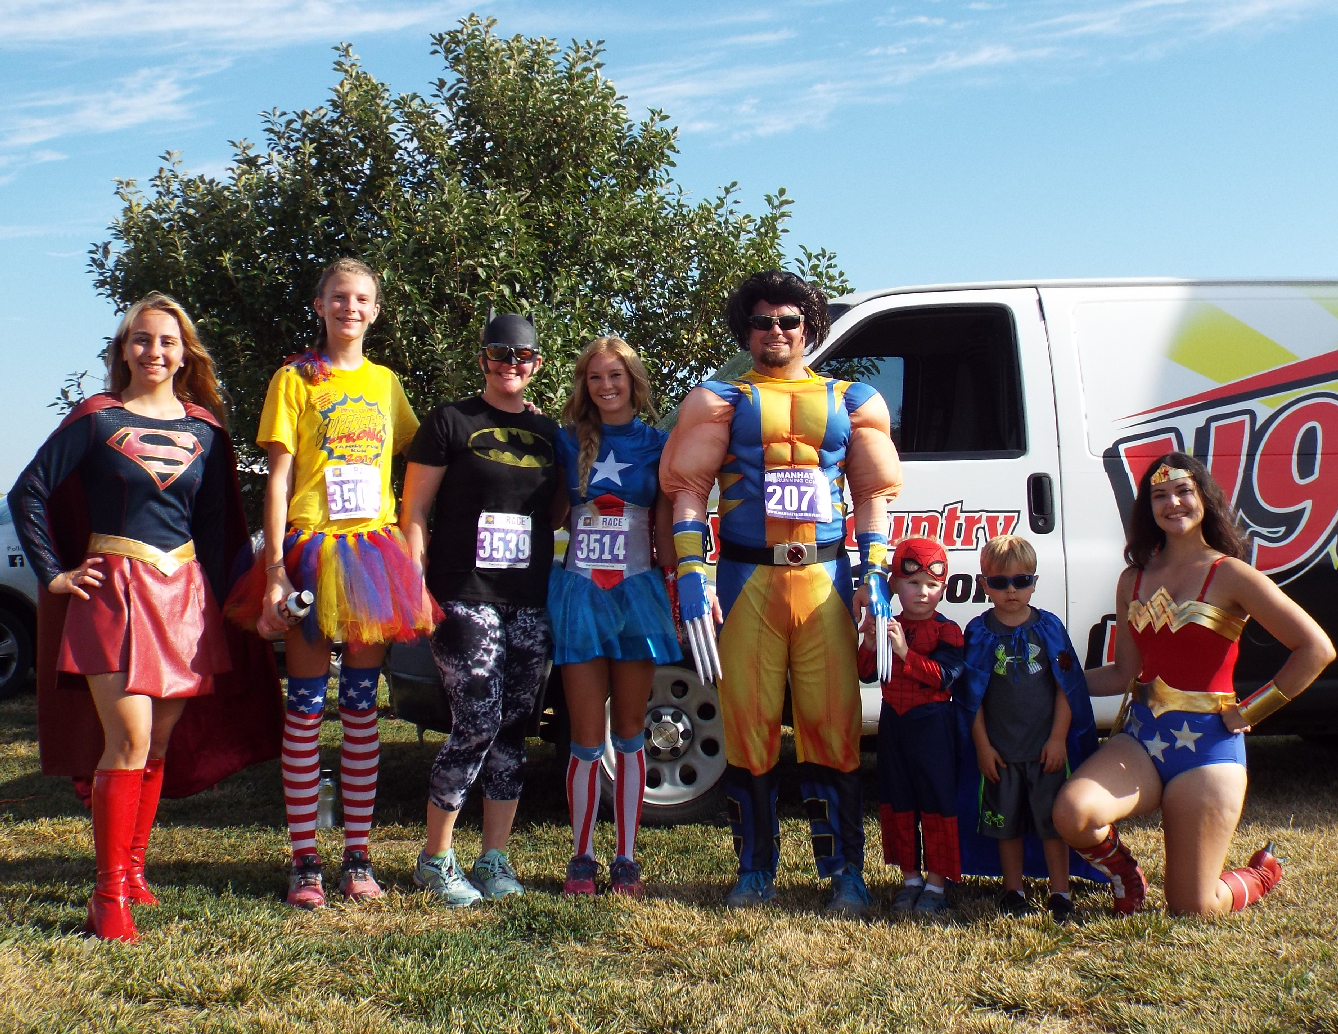 PHOTO GALLERY: Super Heroes Fighting Cancer